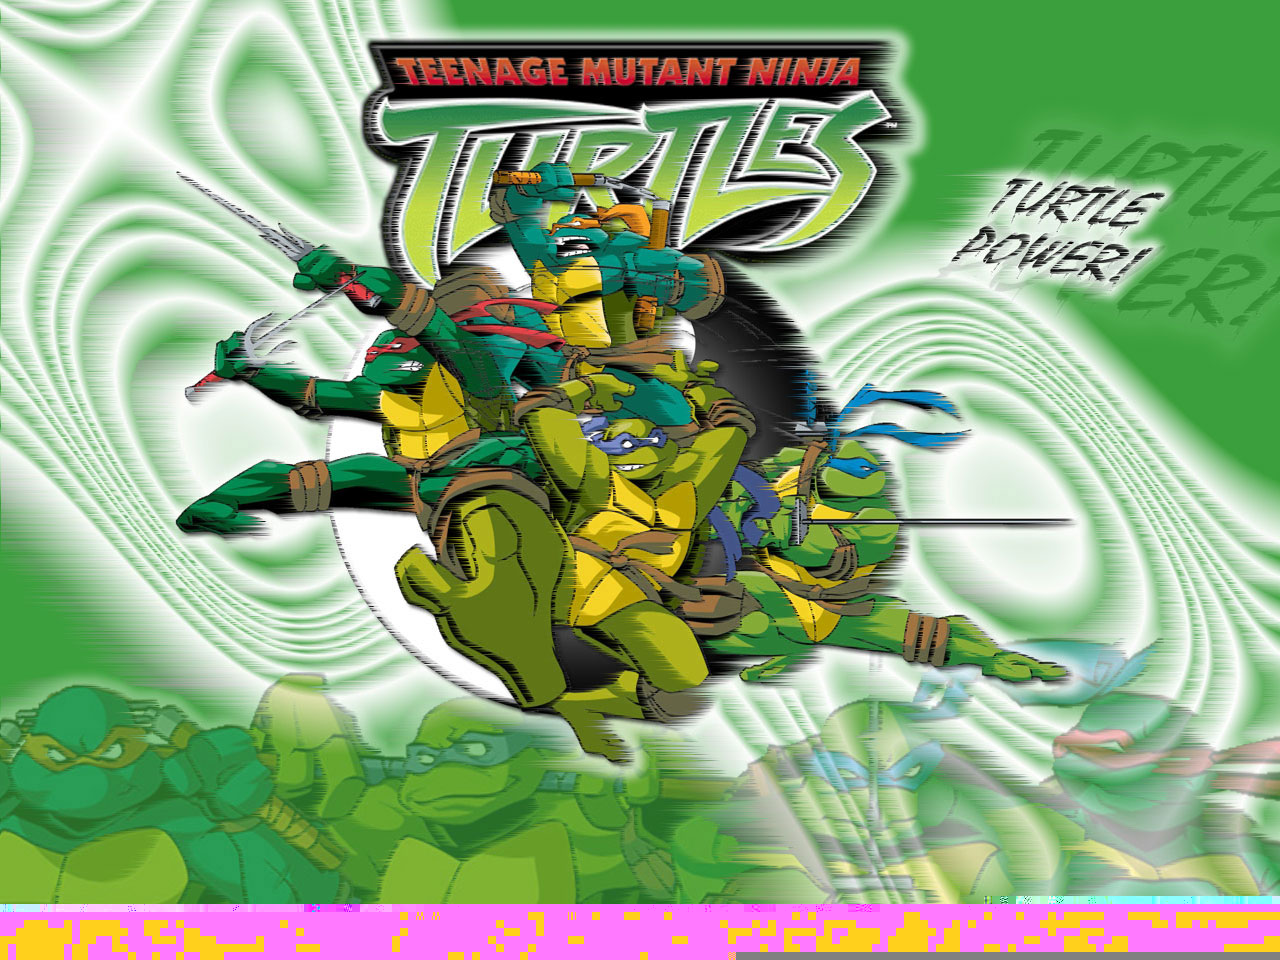 TMNT wallpaper 2003-2009 series (53)